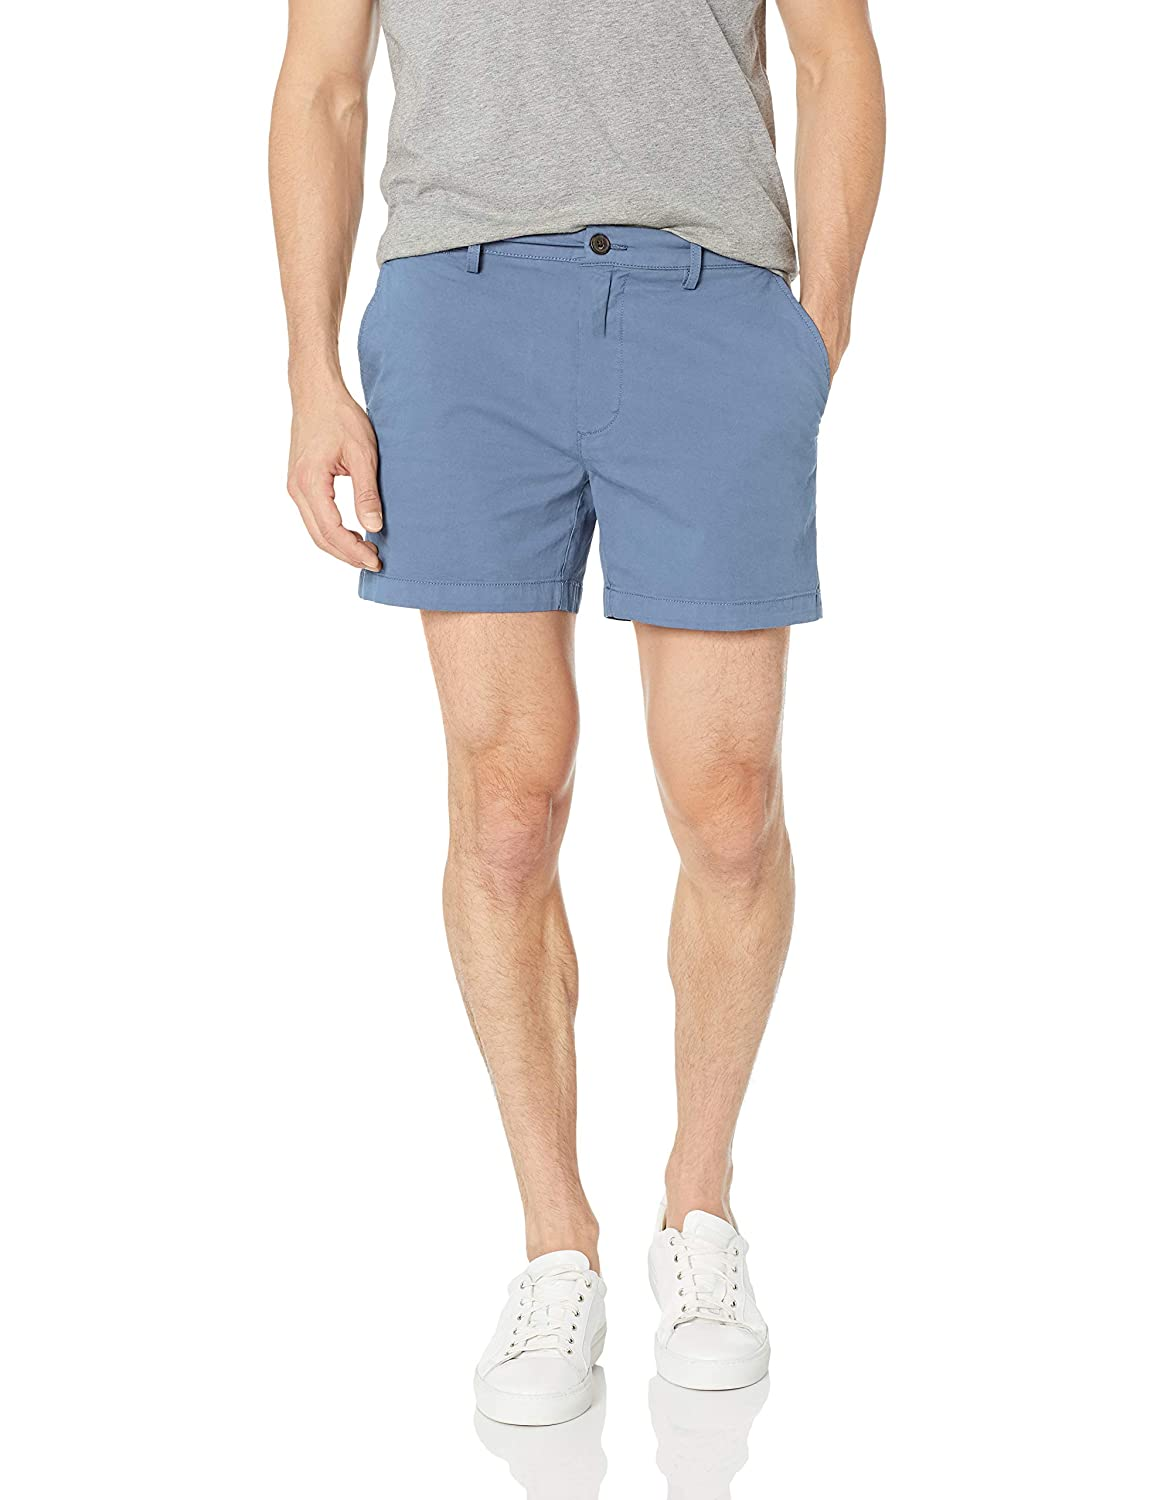 Goodthreads Mens Standard 5' Inseam Flat-Front Stretch Chino Short GT191330FL18